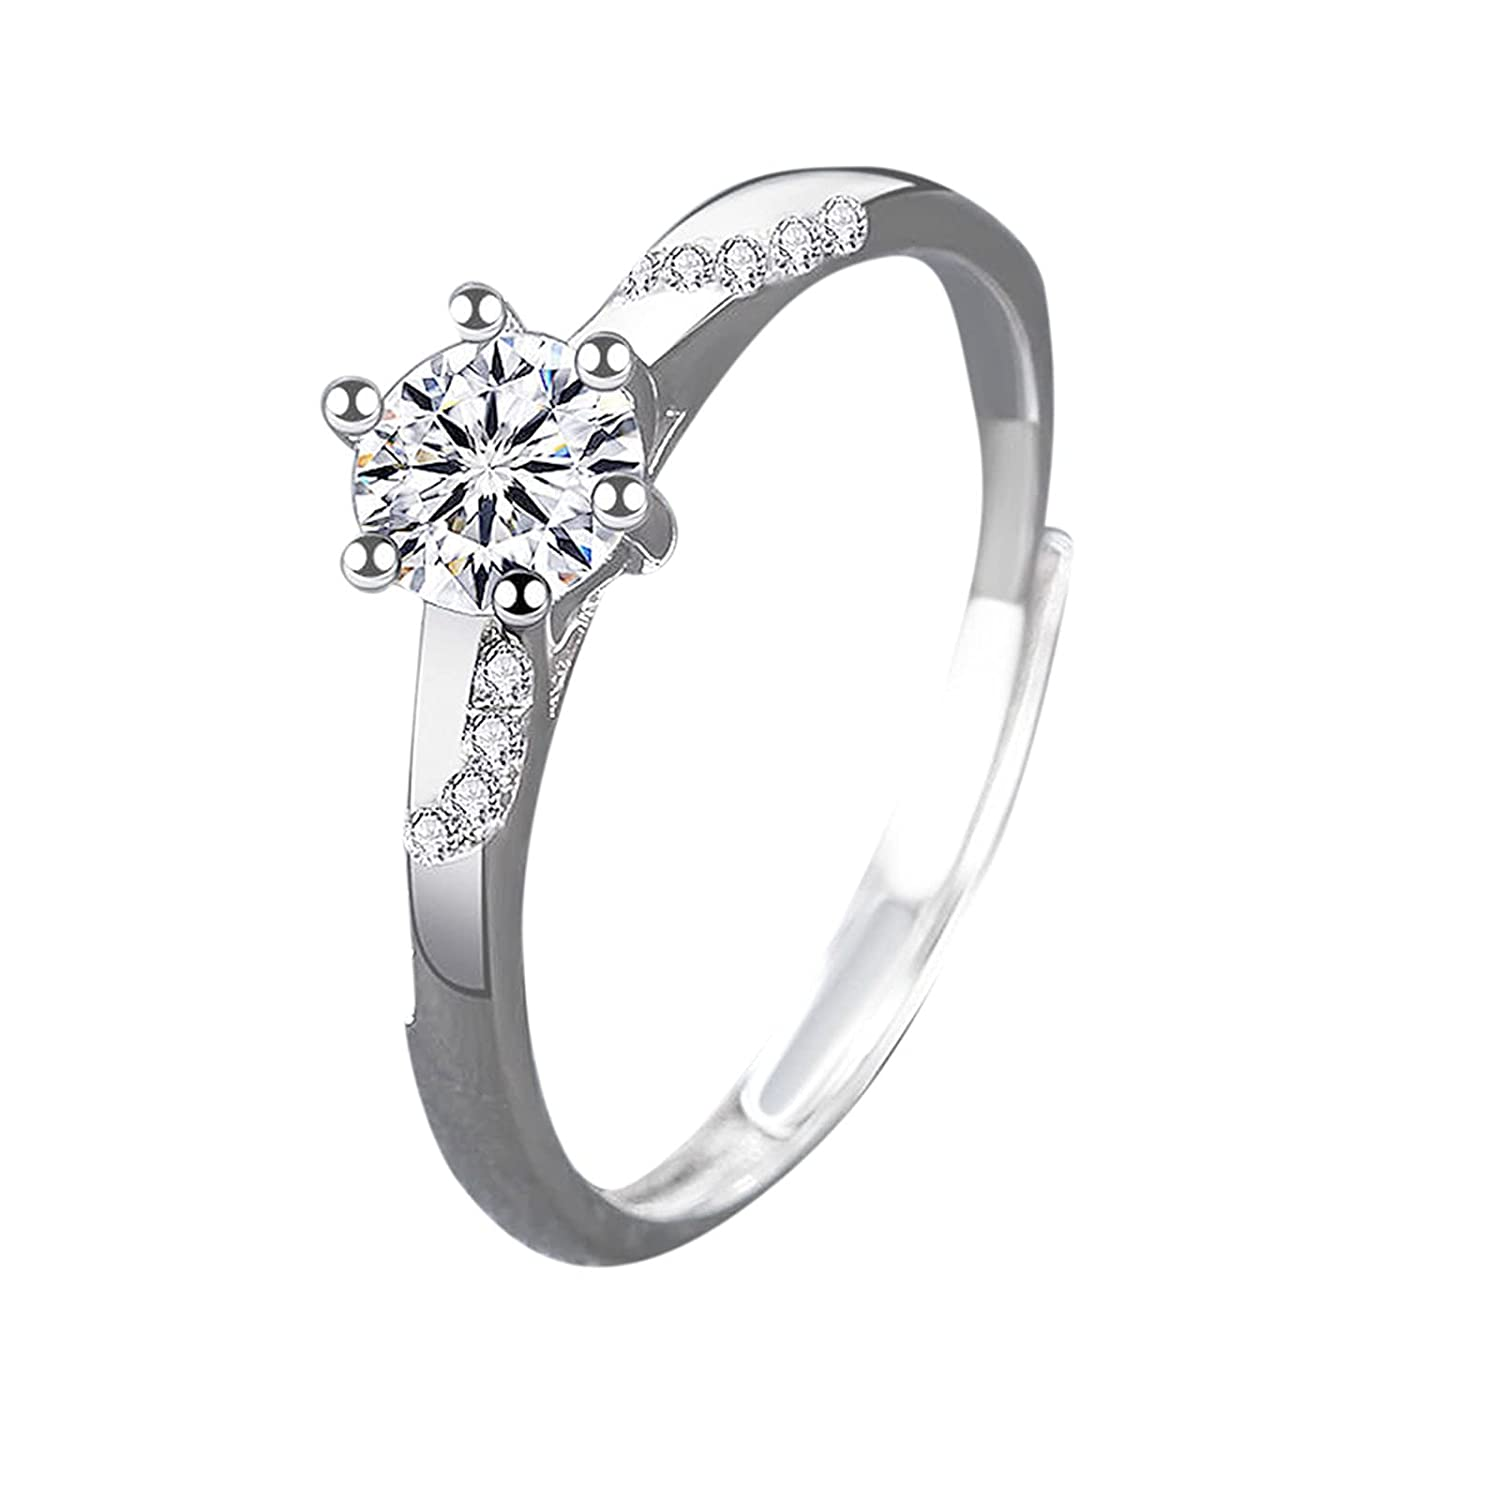 New arrival Women Rings for Wedding Engagement Special Campaign Personality Girlfriend